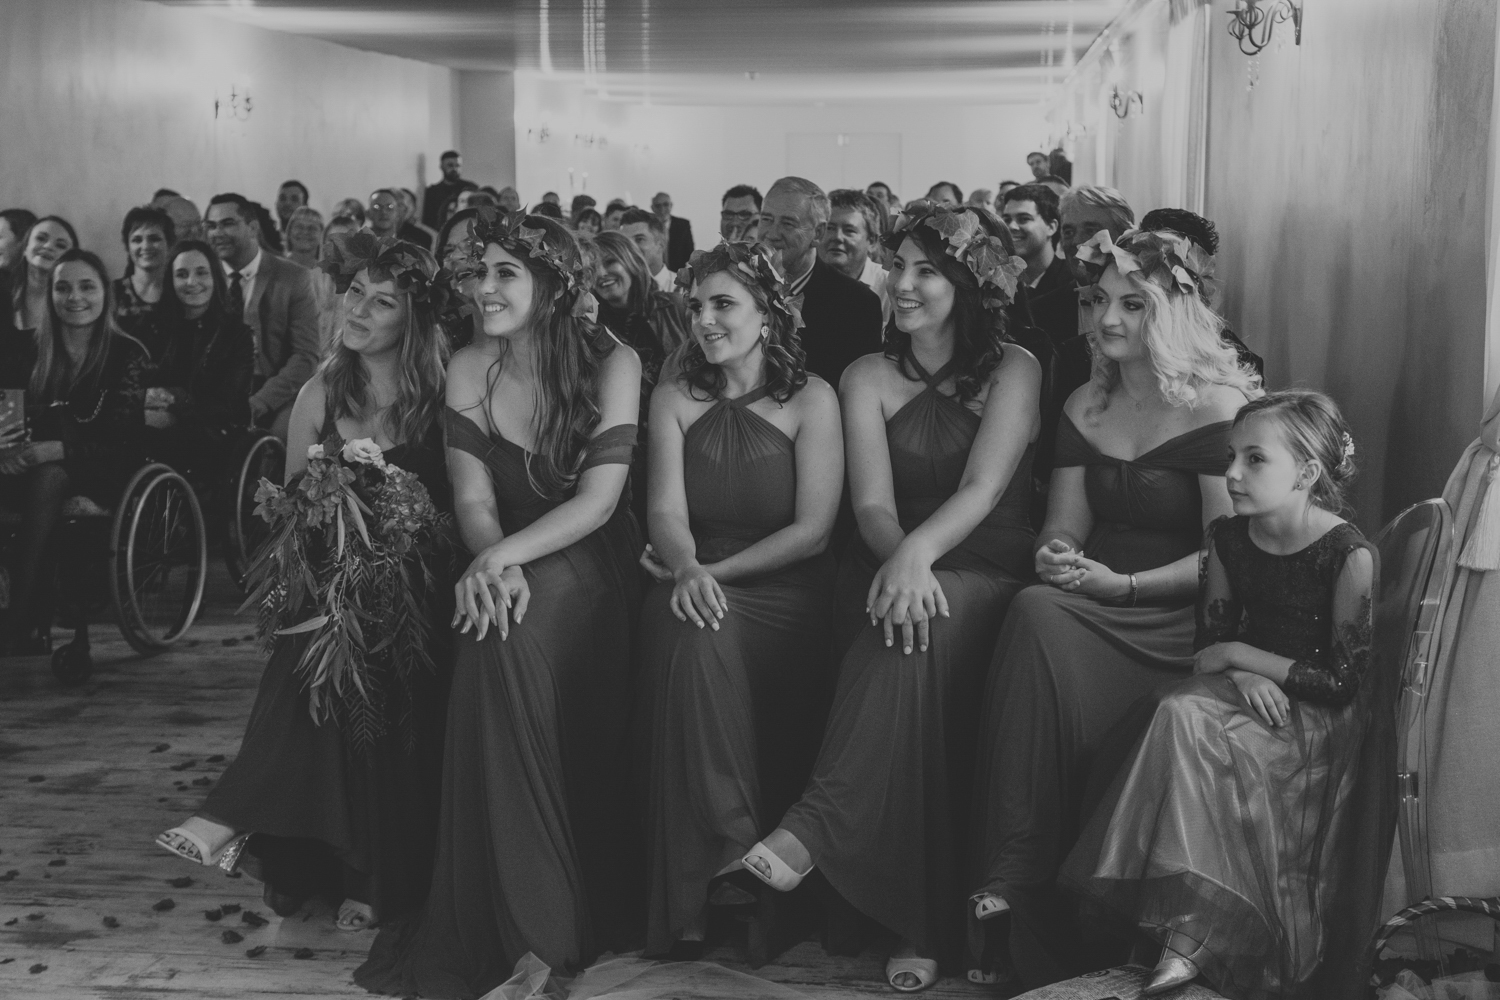 Cape Town Winter Wedding - Bianca Asher Photography-85.jpg